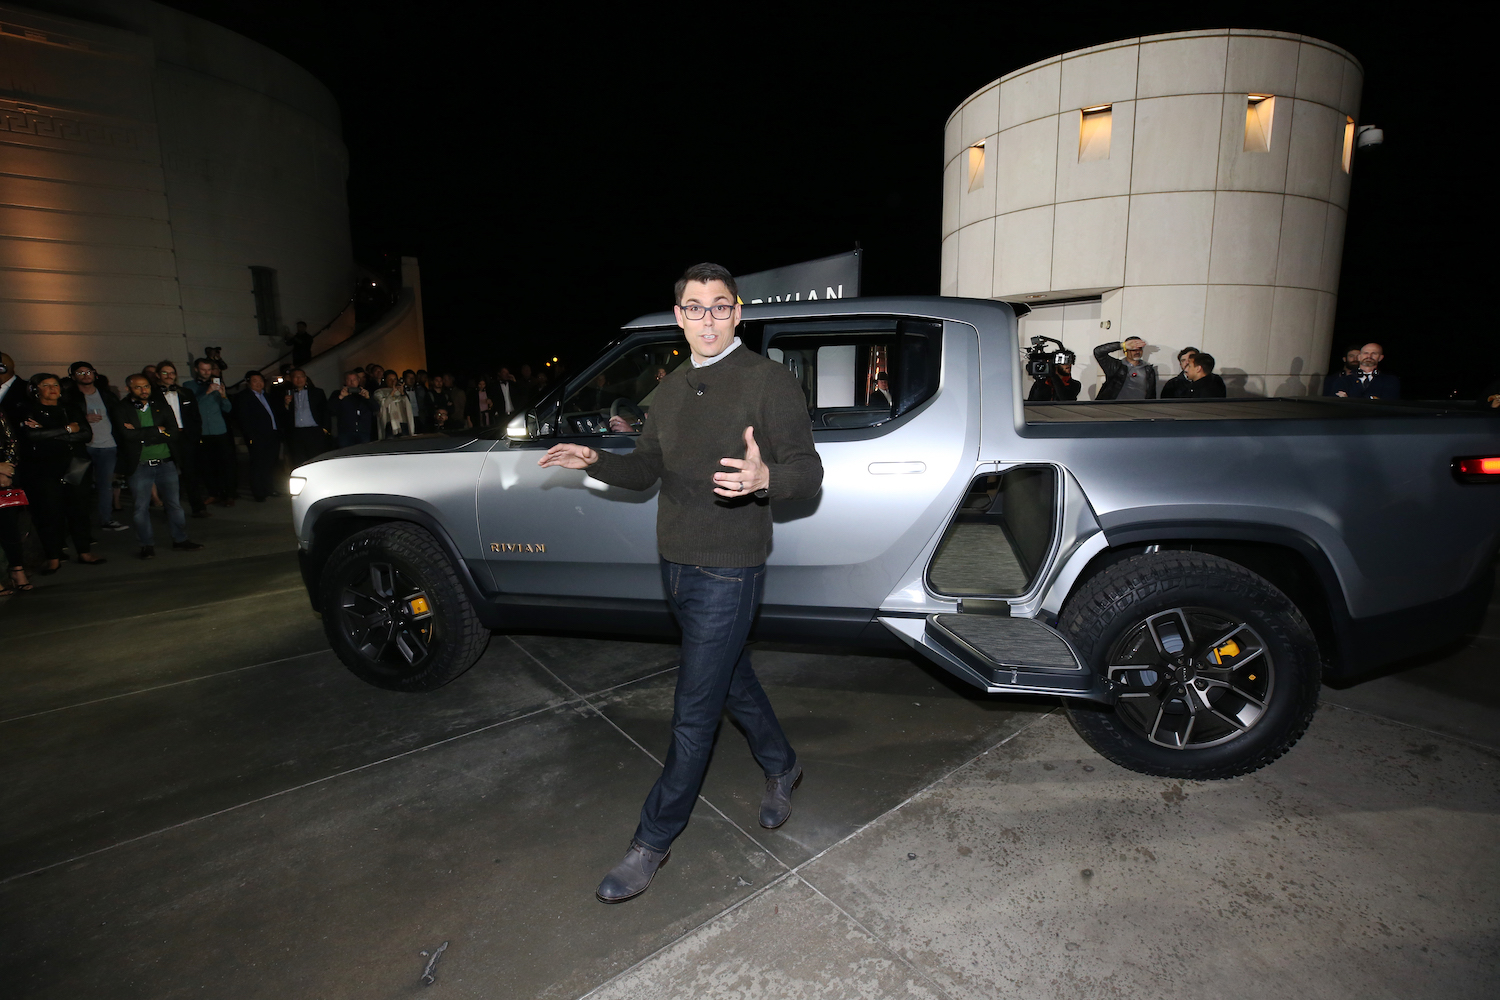 Rivian CEO RJ Scaringe attends and speaks at Rivian Unveils First-Ever Electric Adventure Vehicle Before Its Official Reveal At The LA Auto Show at Griffith Observatory   Phillip Faraone/Getty Images for Rivian